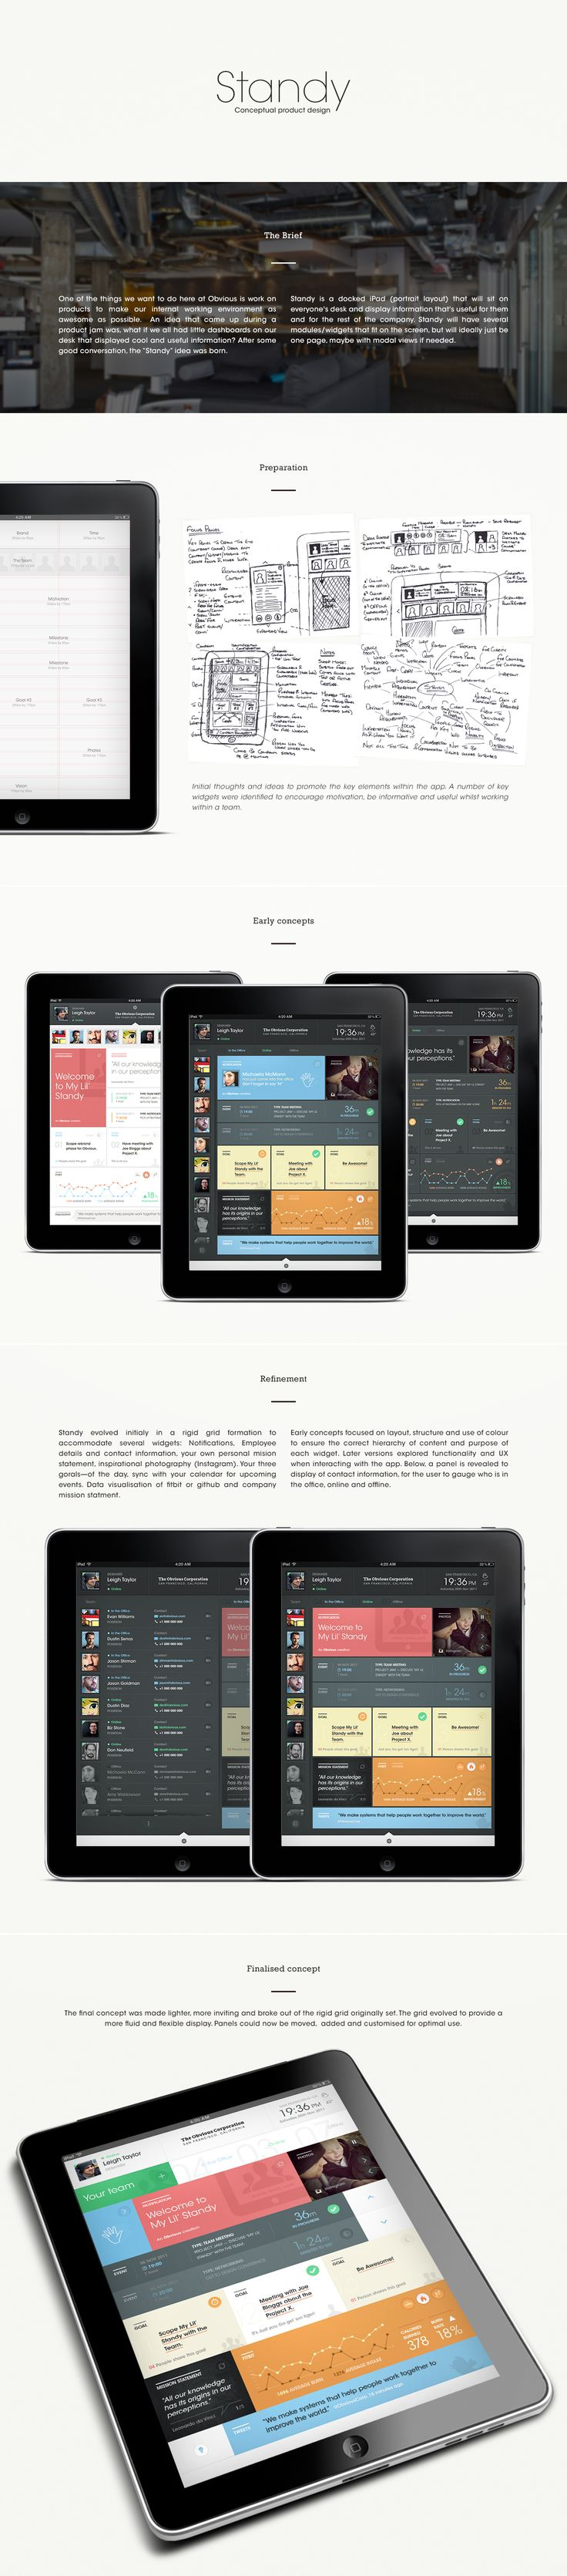 Dribbble social app ui design jpg by ramotion - Standy By Leigh Taylor Via Dribbble Tablet Ui Design